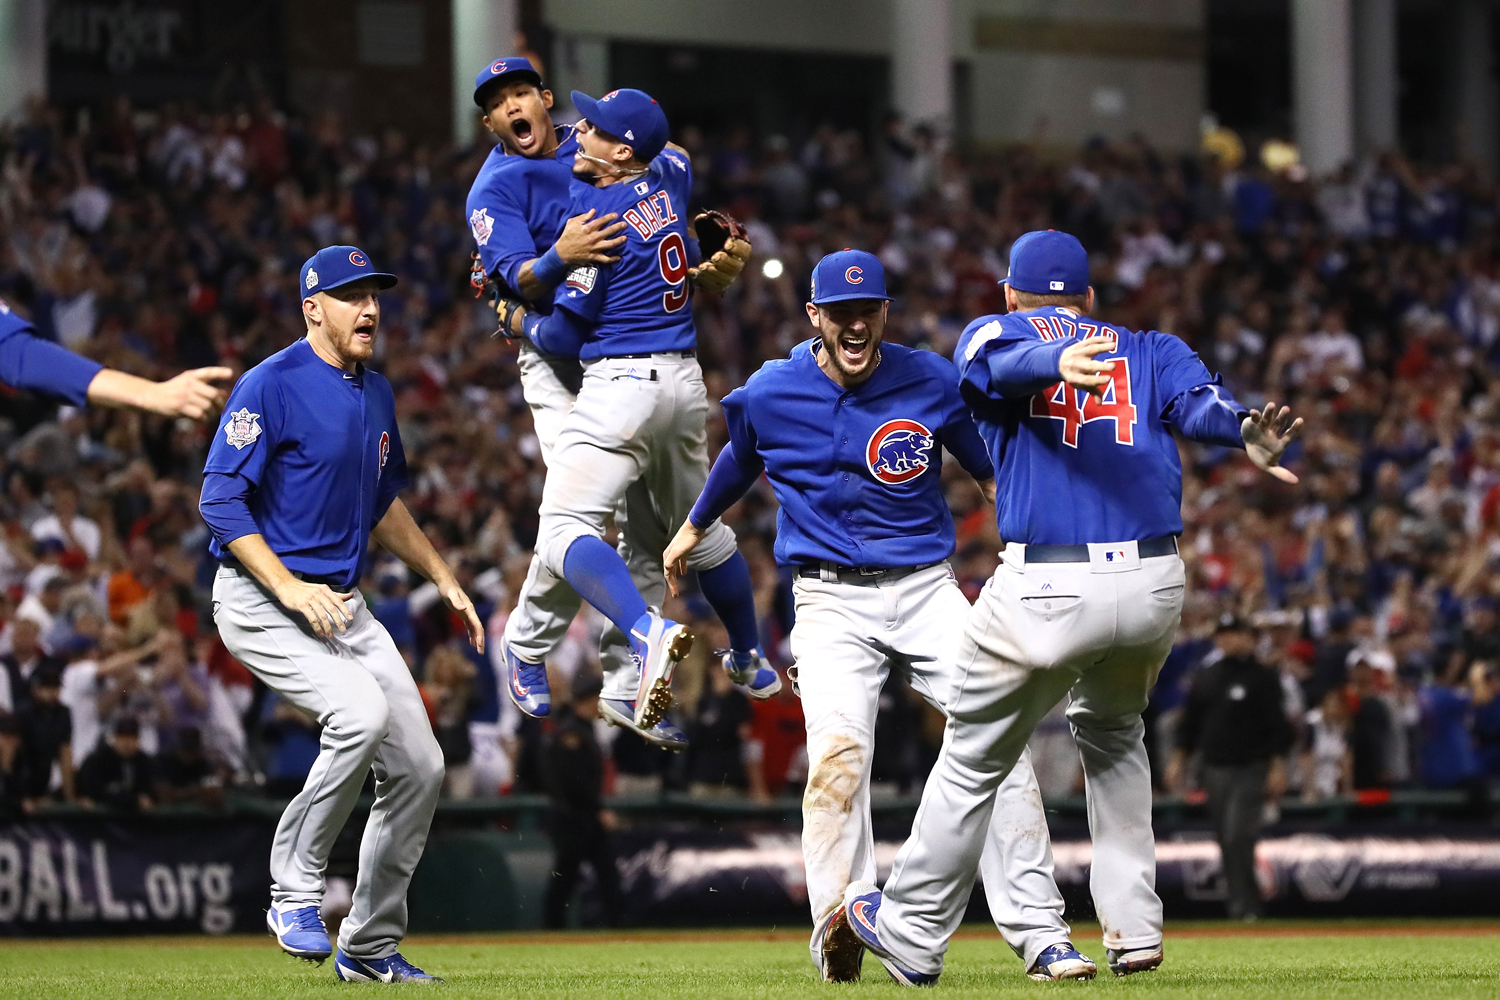 Cubs win the World Series